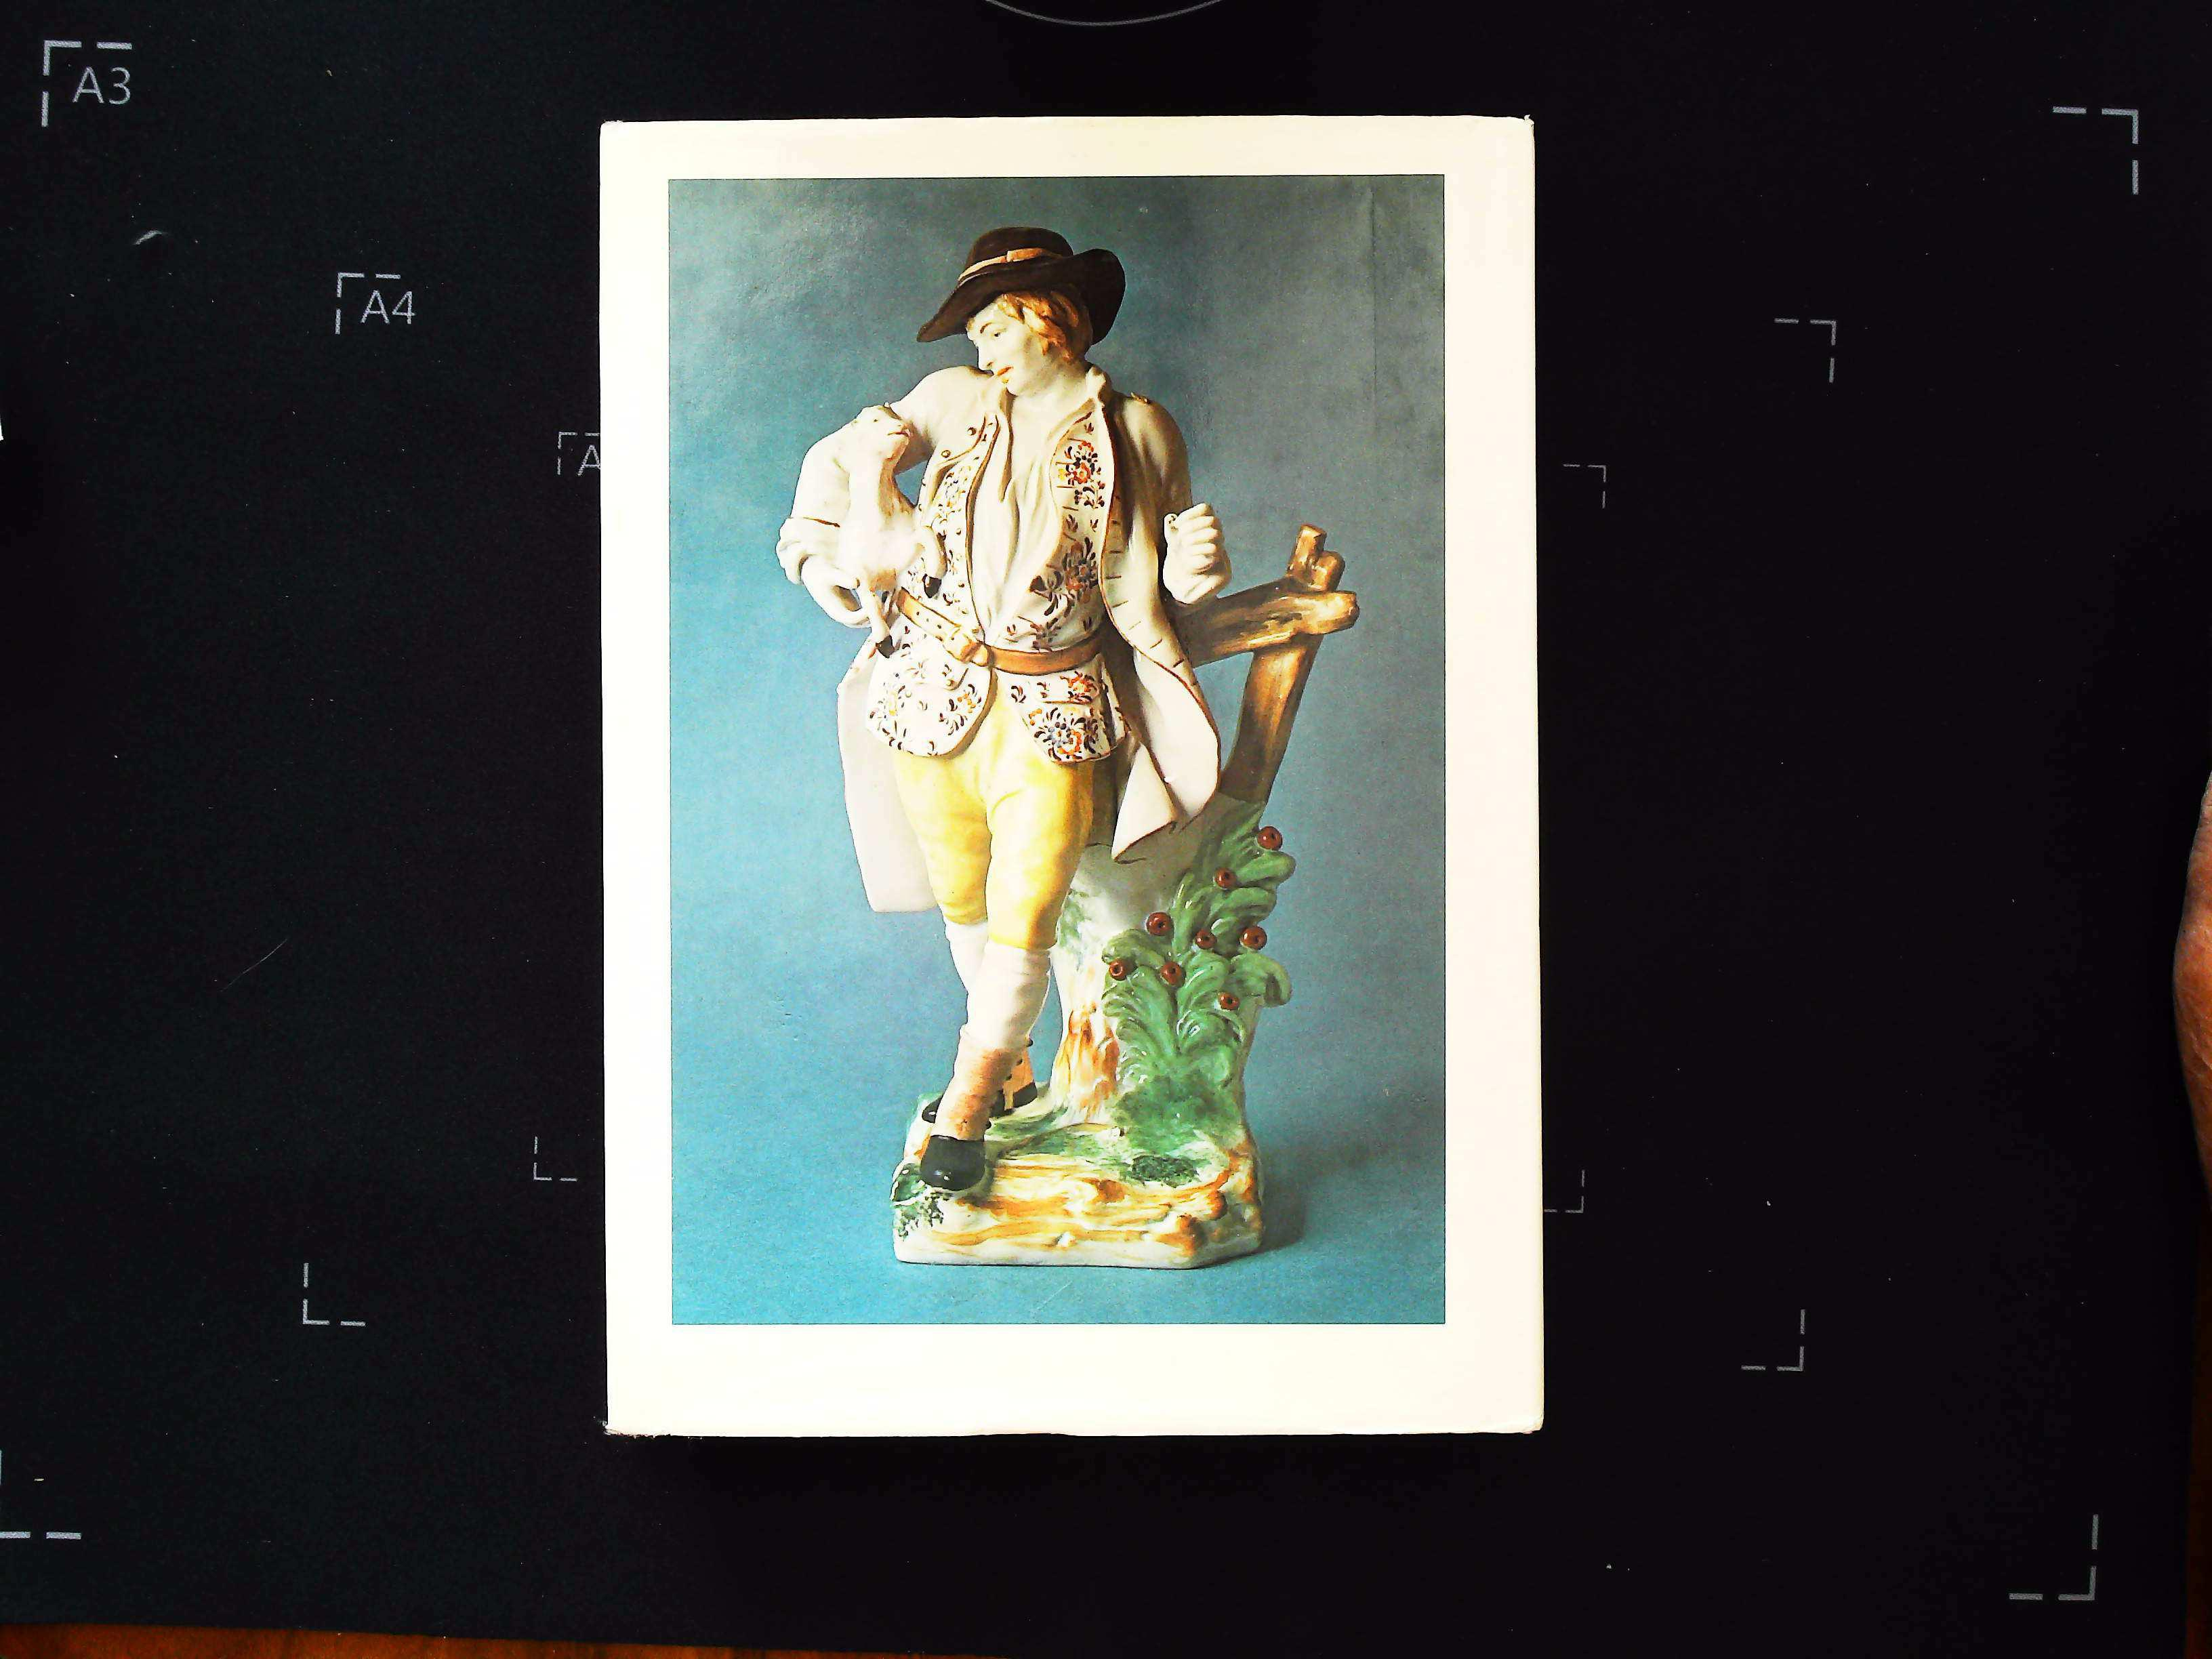 The Arthur Negus Guide to English Pottery and Porcelain by Bernard Price 176 pages Published 1981 - Image 2 of 3